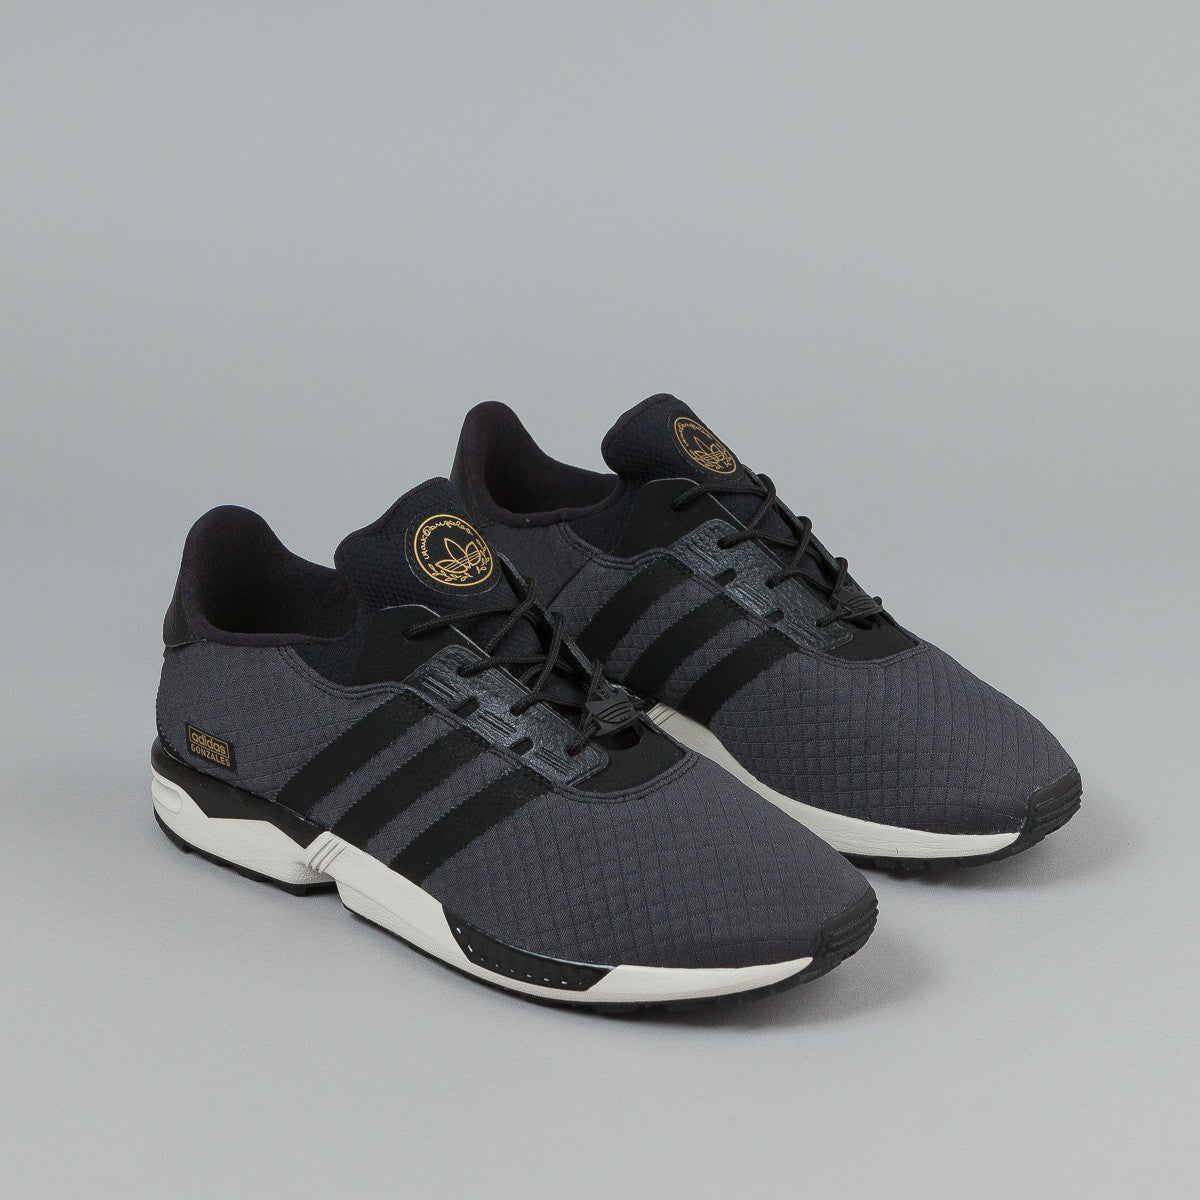 Adidas ZX Gonz Shoes - Carbon / Black / Black